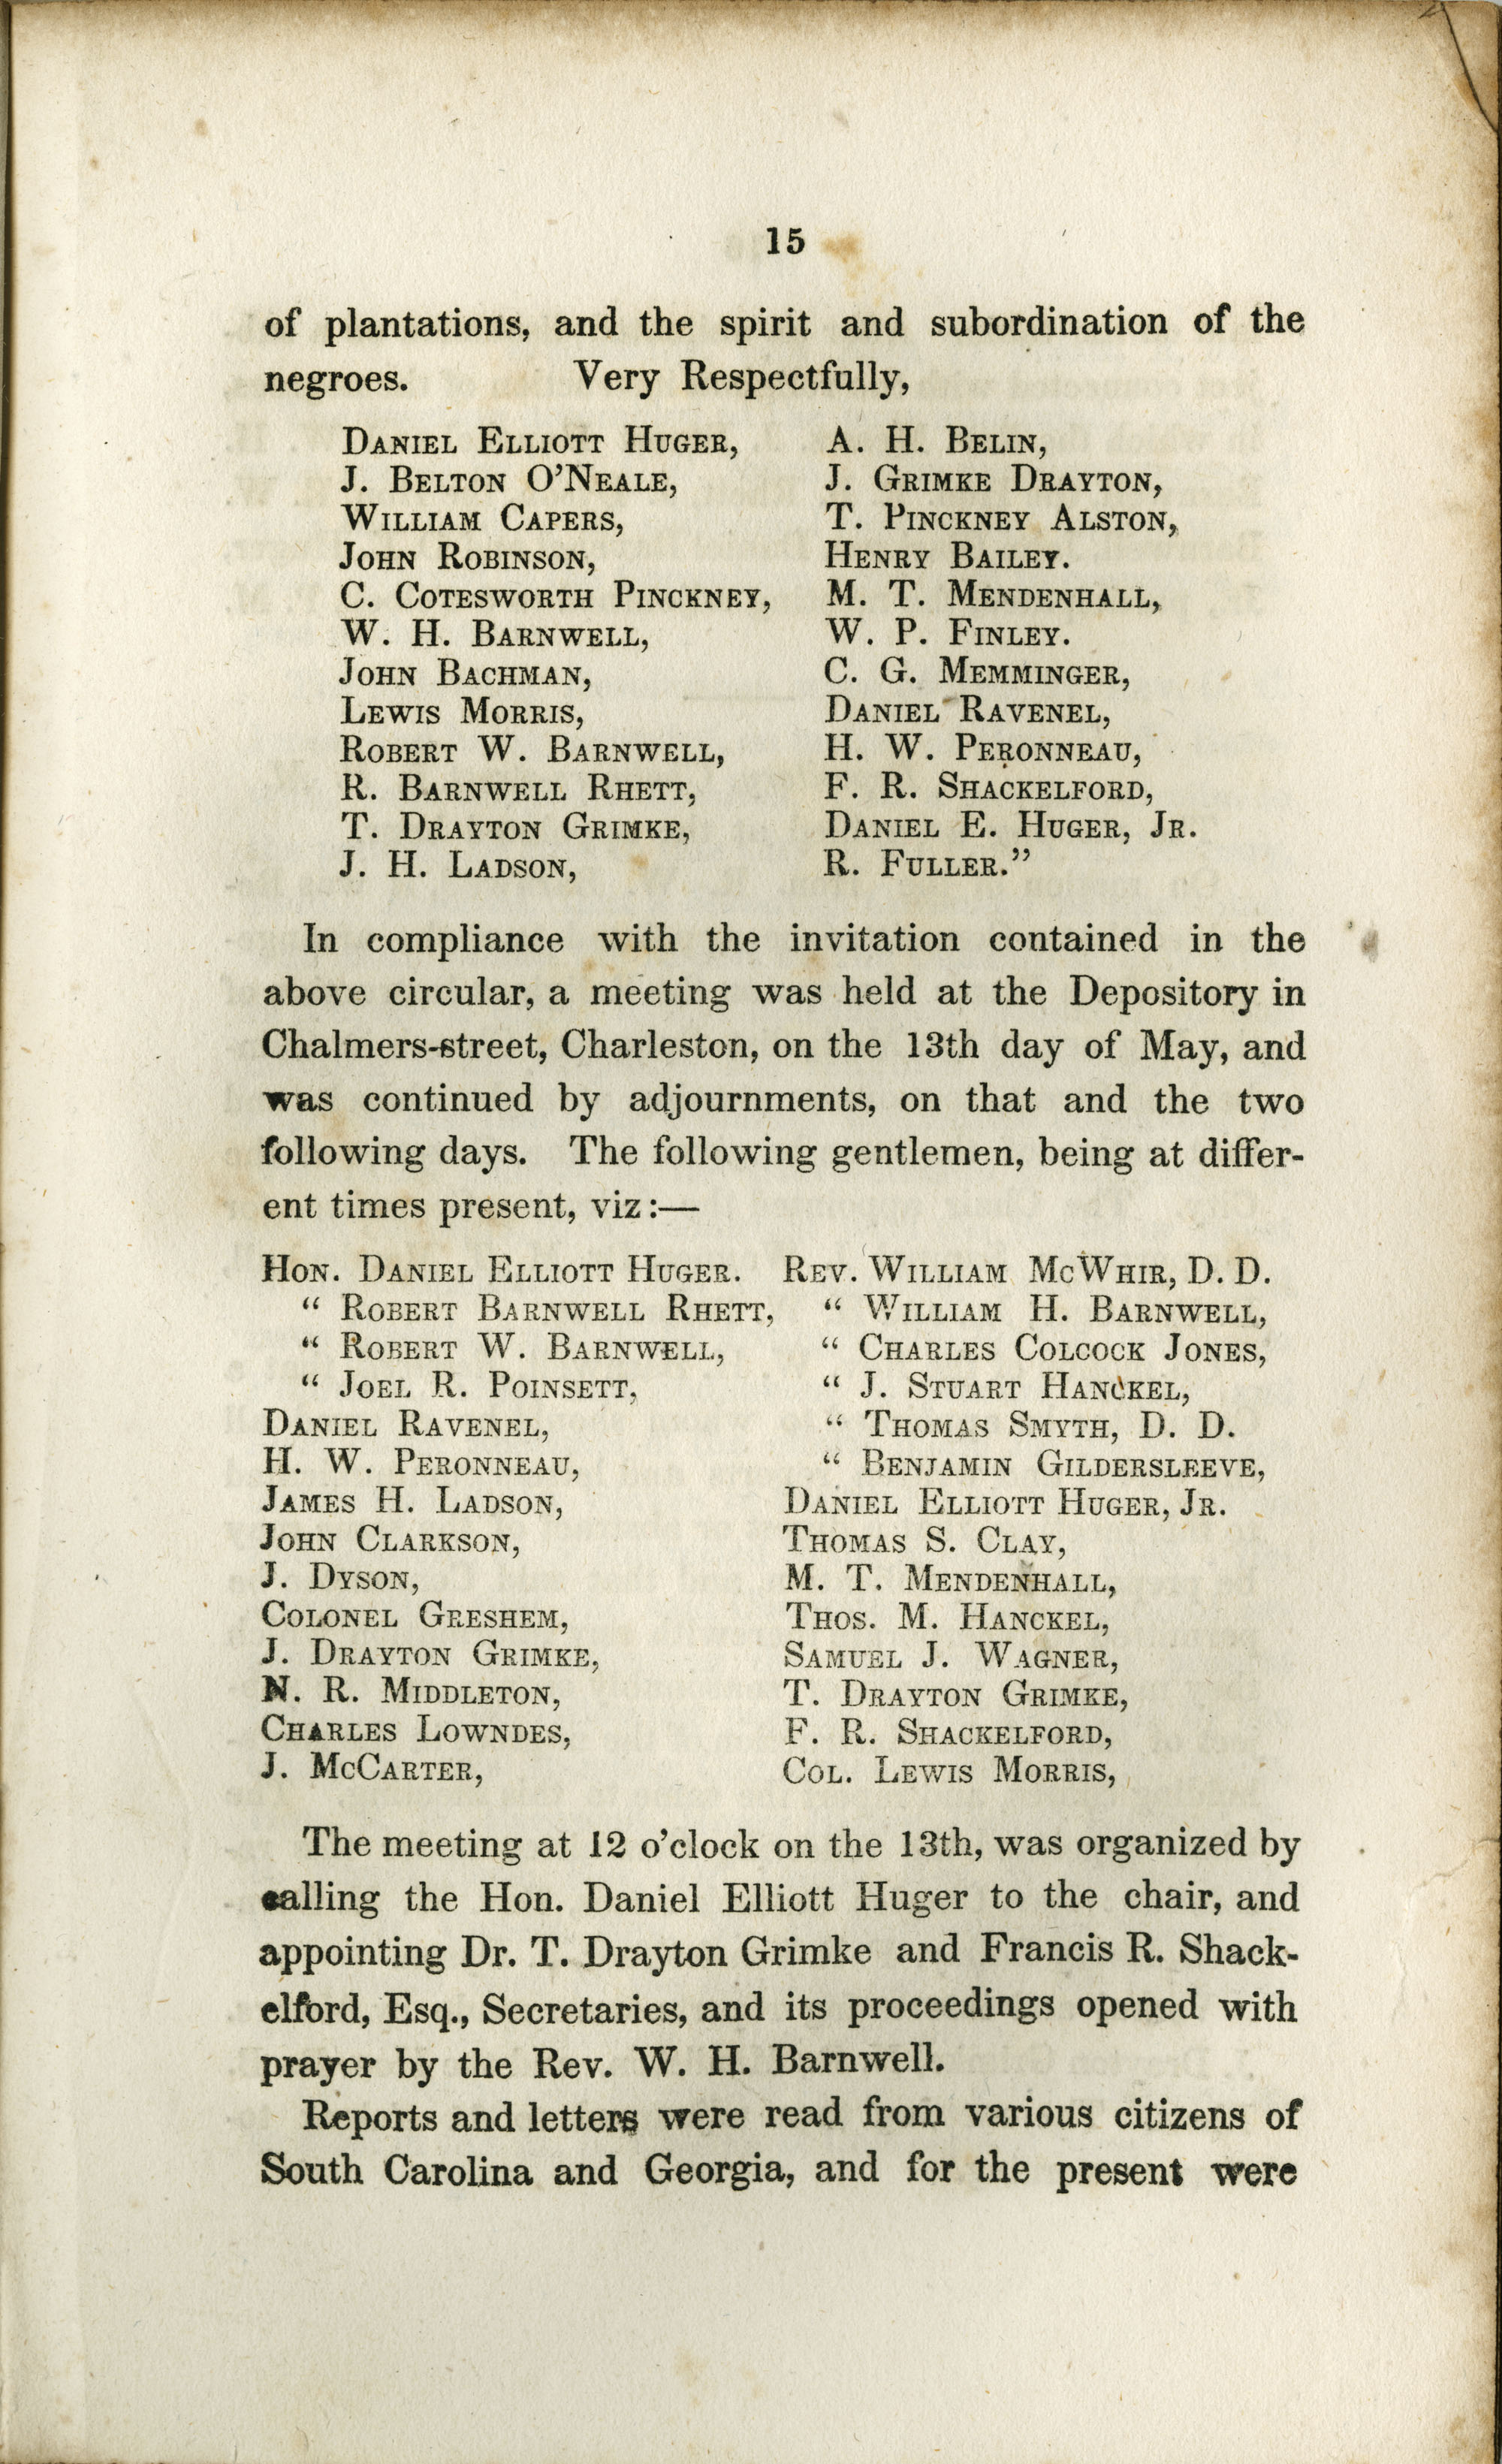 Proceedings of the Meeting, Page 15